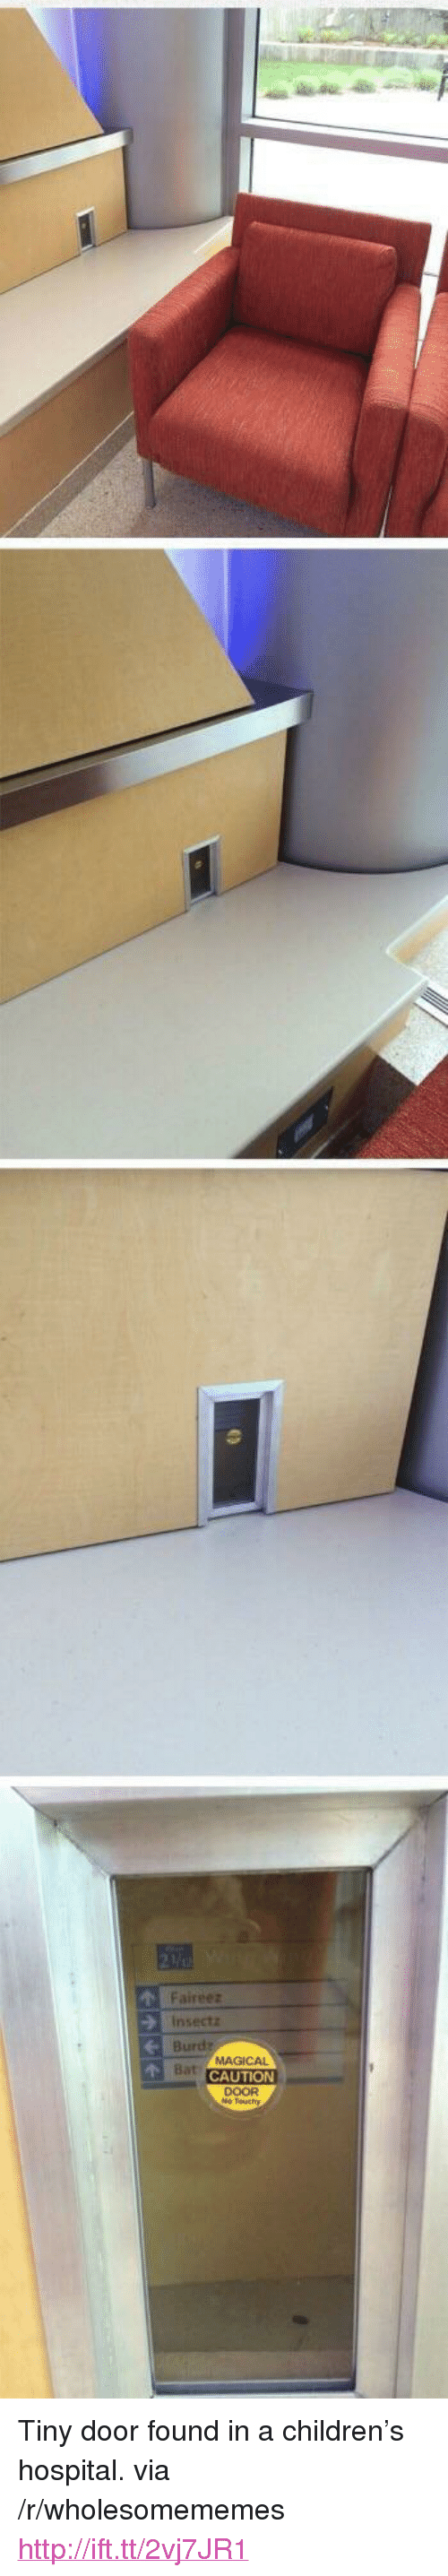 "Touchy: Faireez  insectz  Burdz  CAUTION  DOOR  o Touchy <p>Tiny door found in a children&rsquo;s hospital. via /r/wholesomememes <a href=""http://ift.tt/2vj7JR1"">http://ift.tt/2vj7JR1</a></p>"